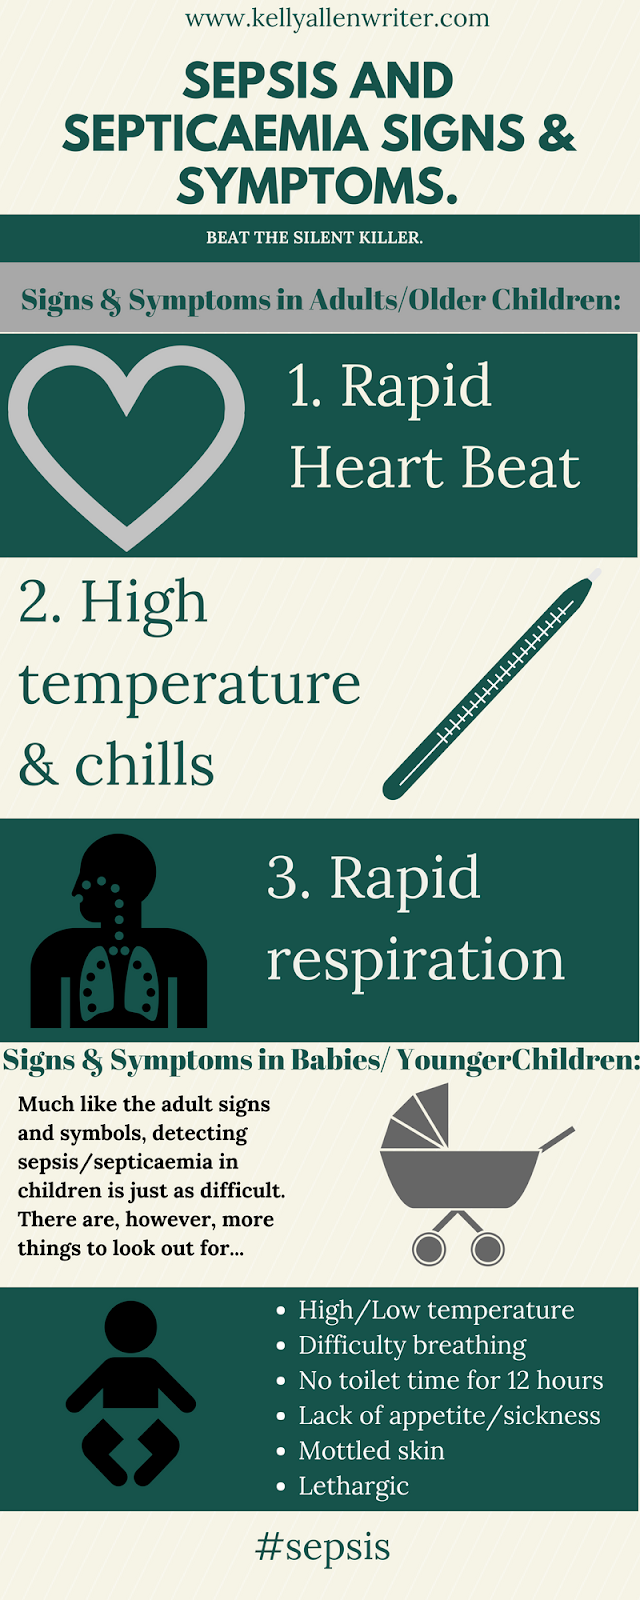 infographic/pin with all signs and symptoms.